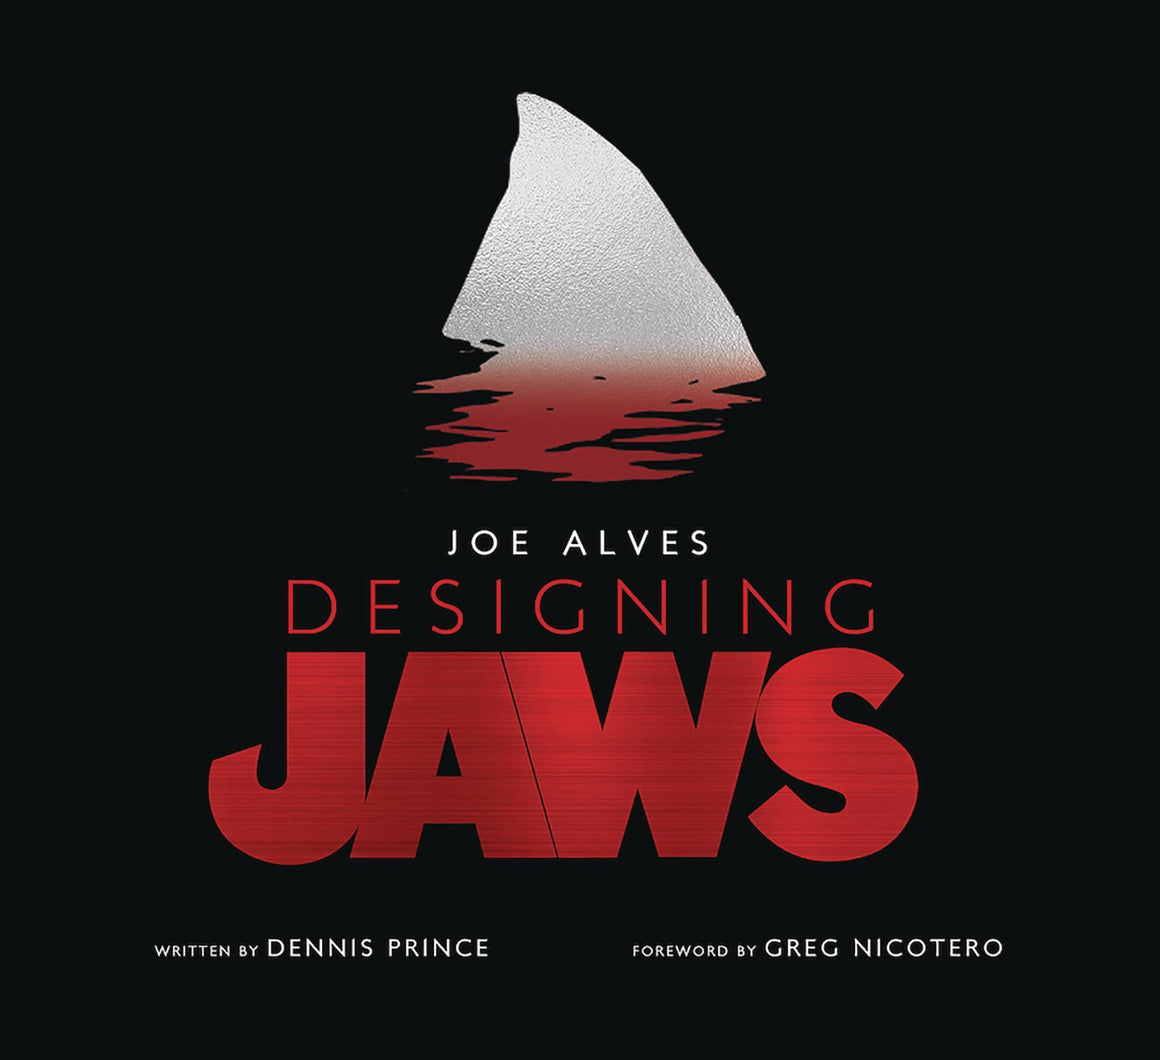 Joe Alves Designing Jaws